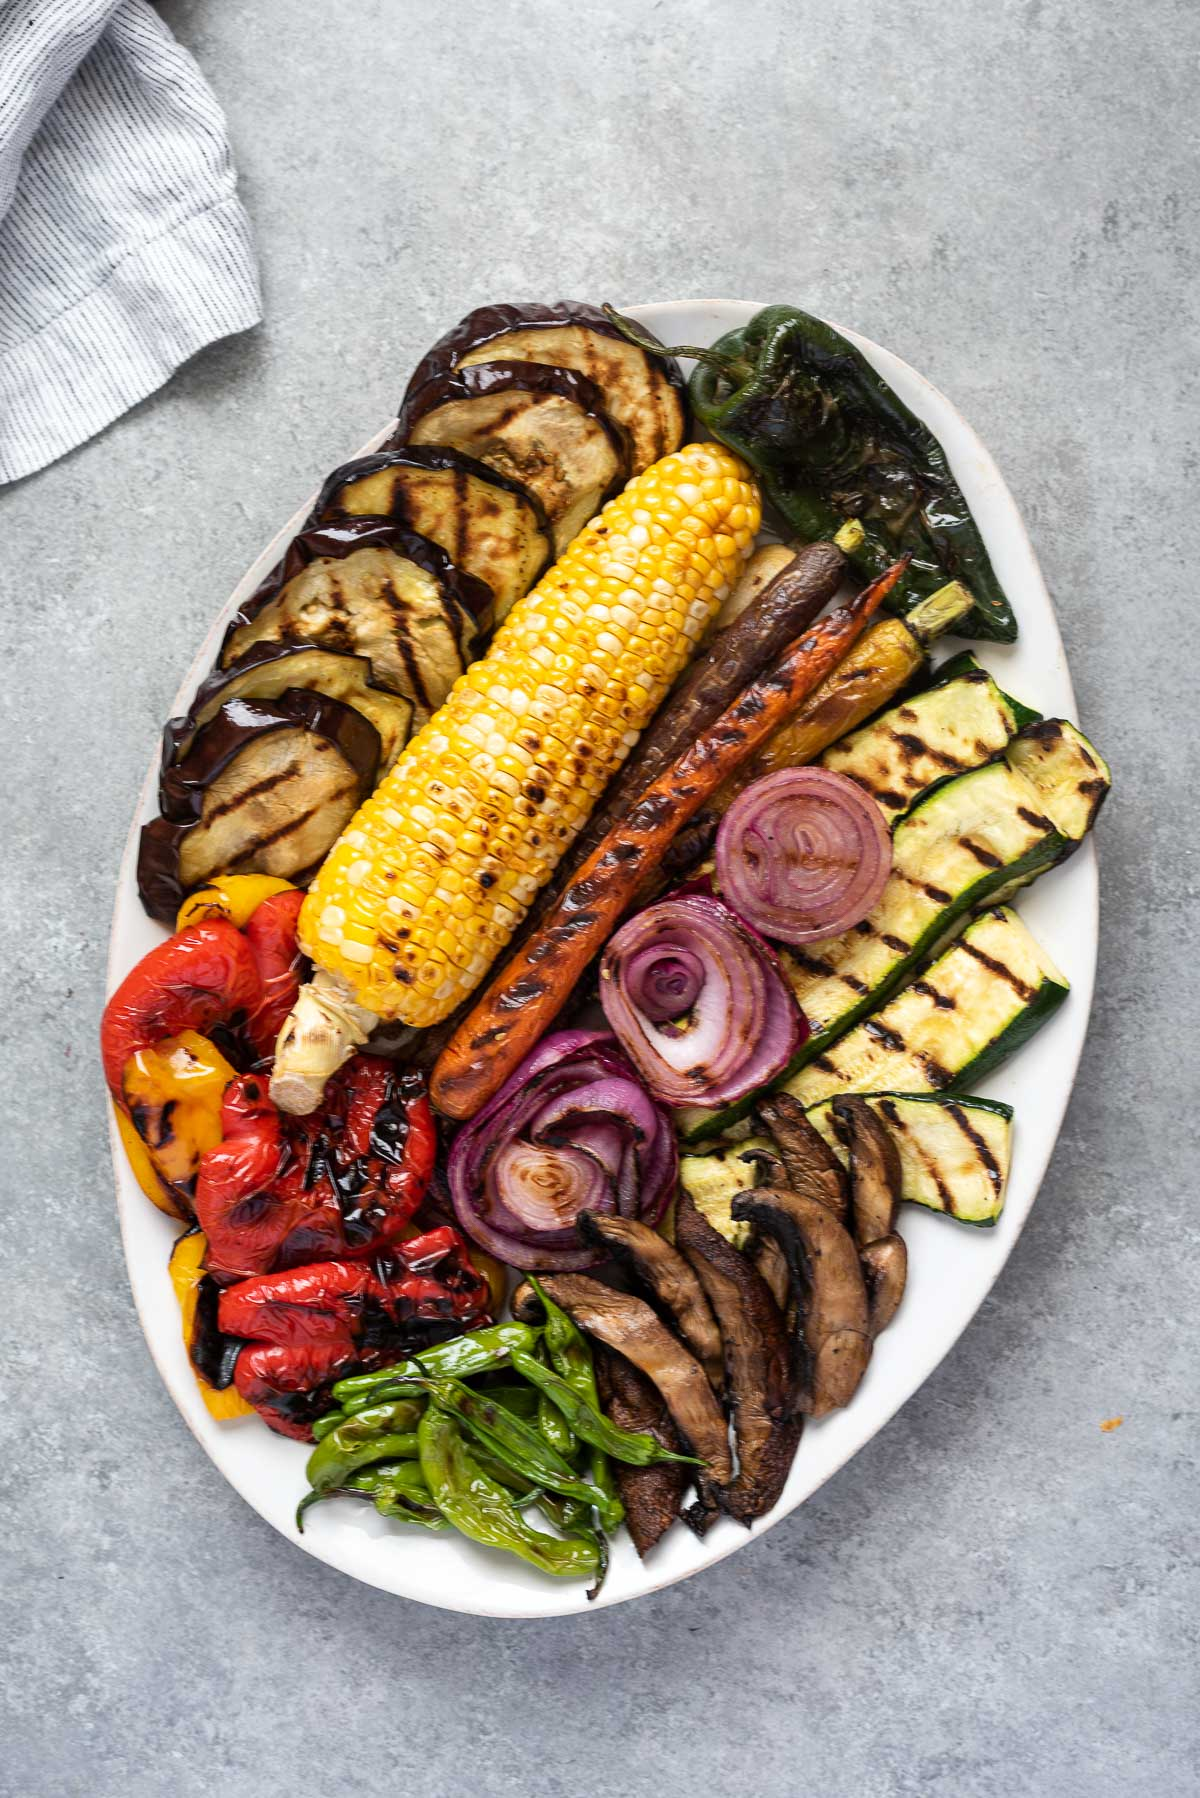 Grilled vegetables arranged on a white serving platter